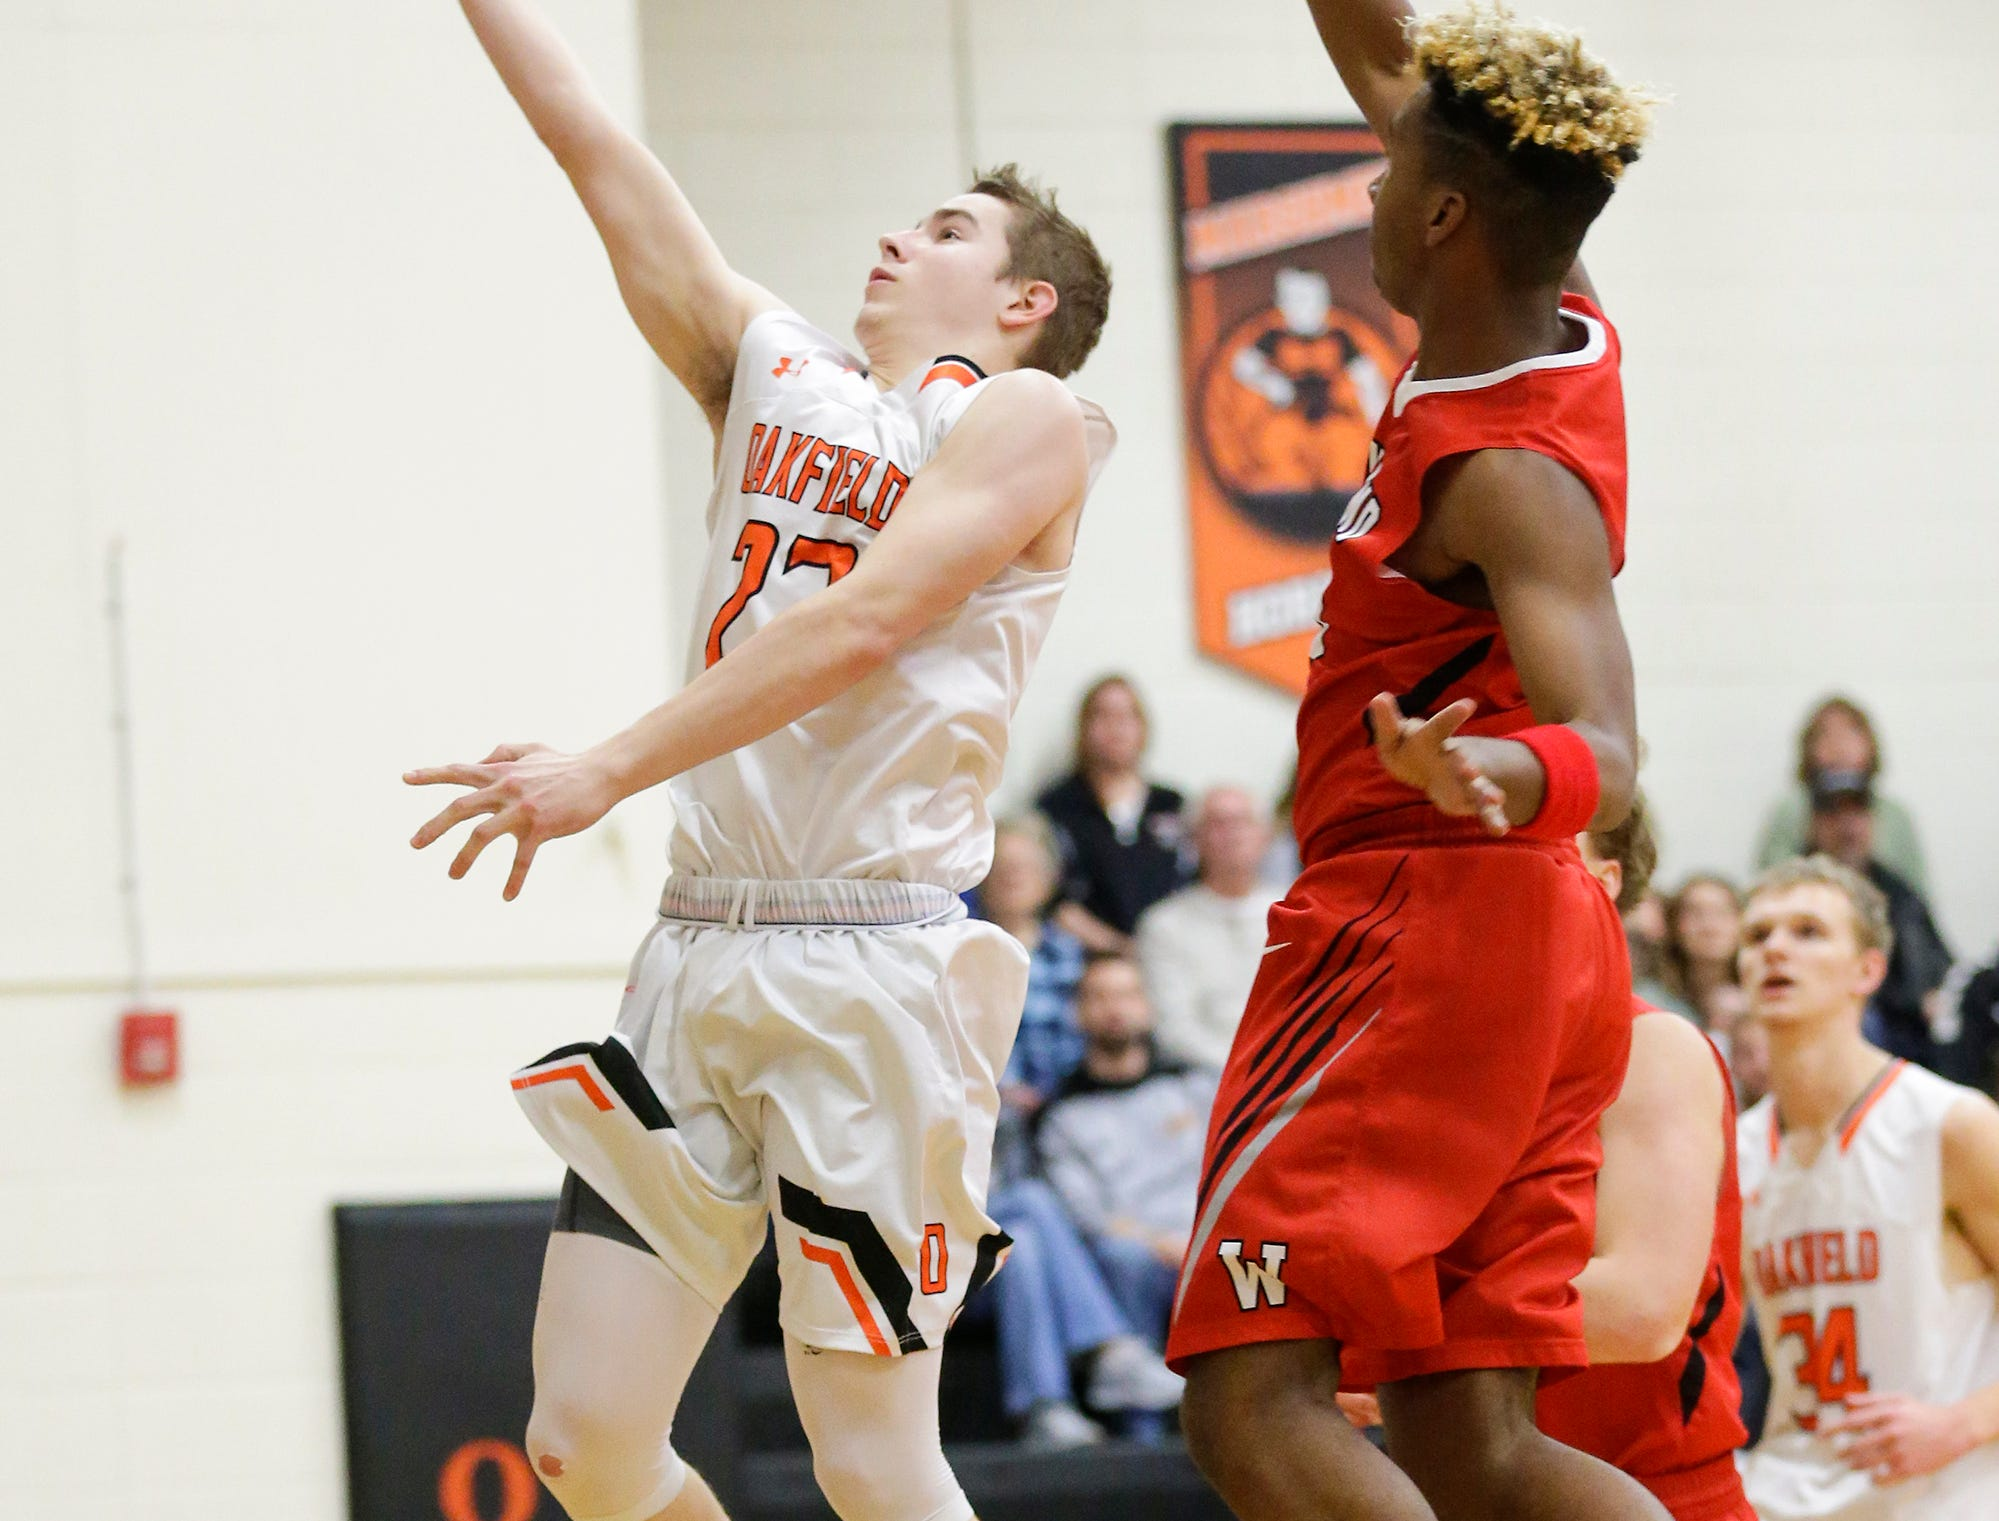 Oakfield High School boys basketball's Max Margelofsky goes in for a lay-up against Wayland Academy January 11, 2019 during their game in Oakfield. Oakfield won the game 56-48. Doug Raflik/USA TODAY NETWORK-Wisconsin